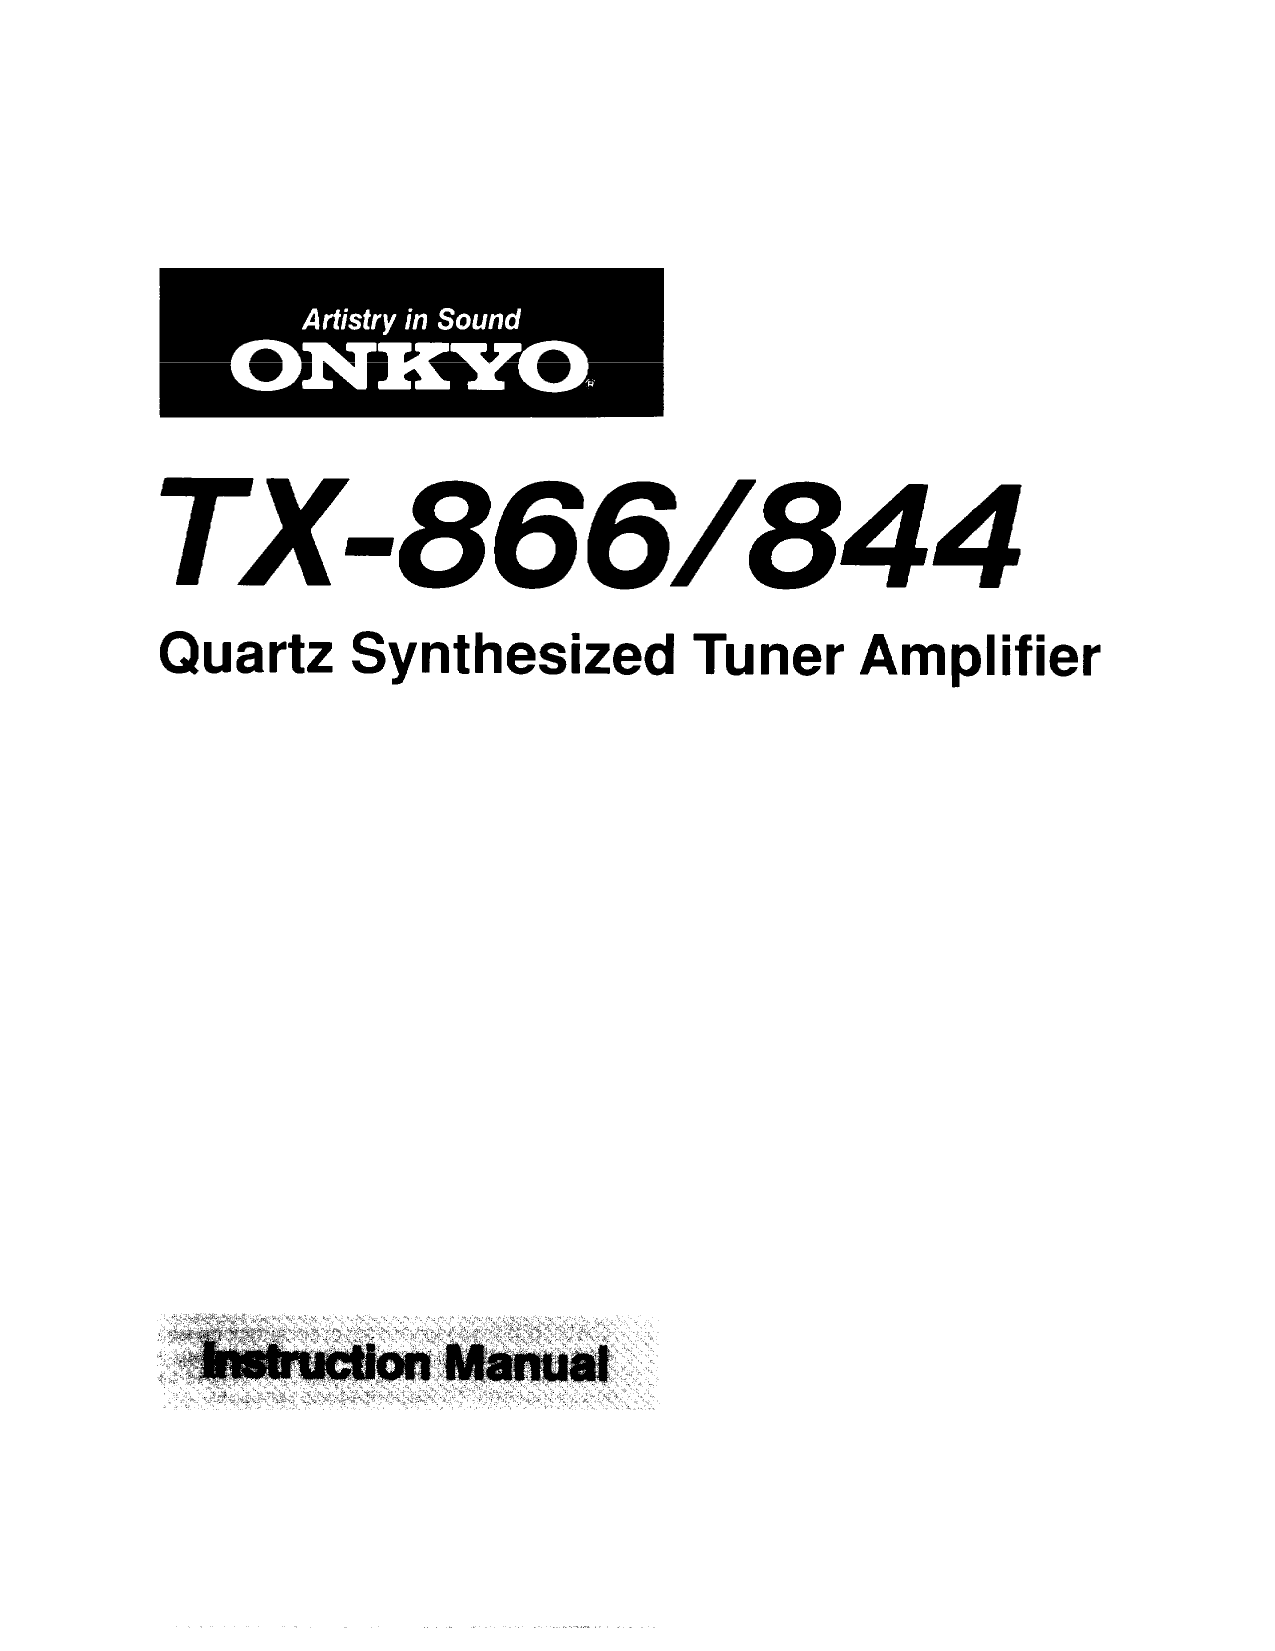 Download free pdf for Onkyo TX-844 Receiver manual